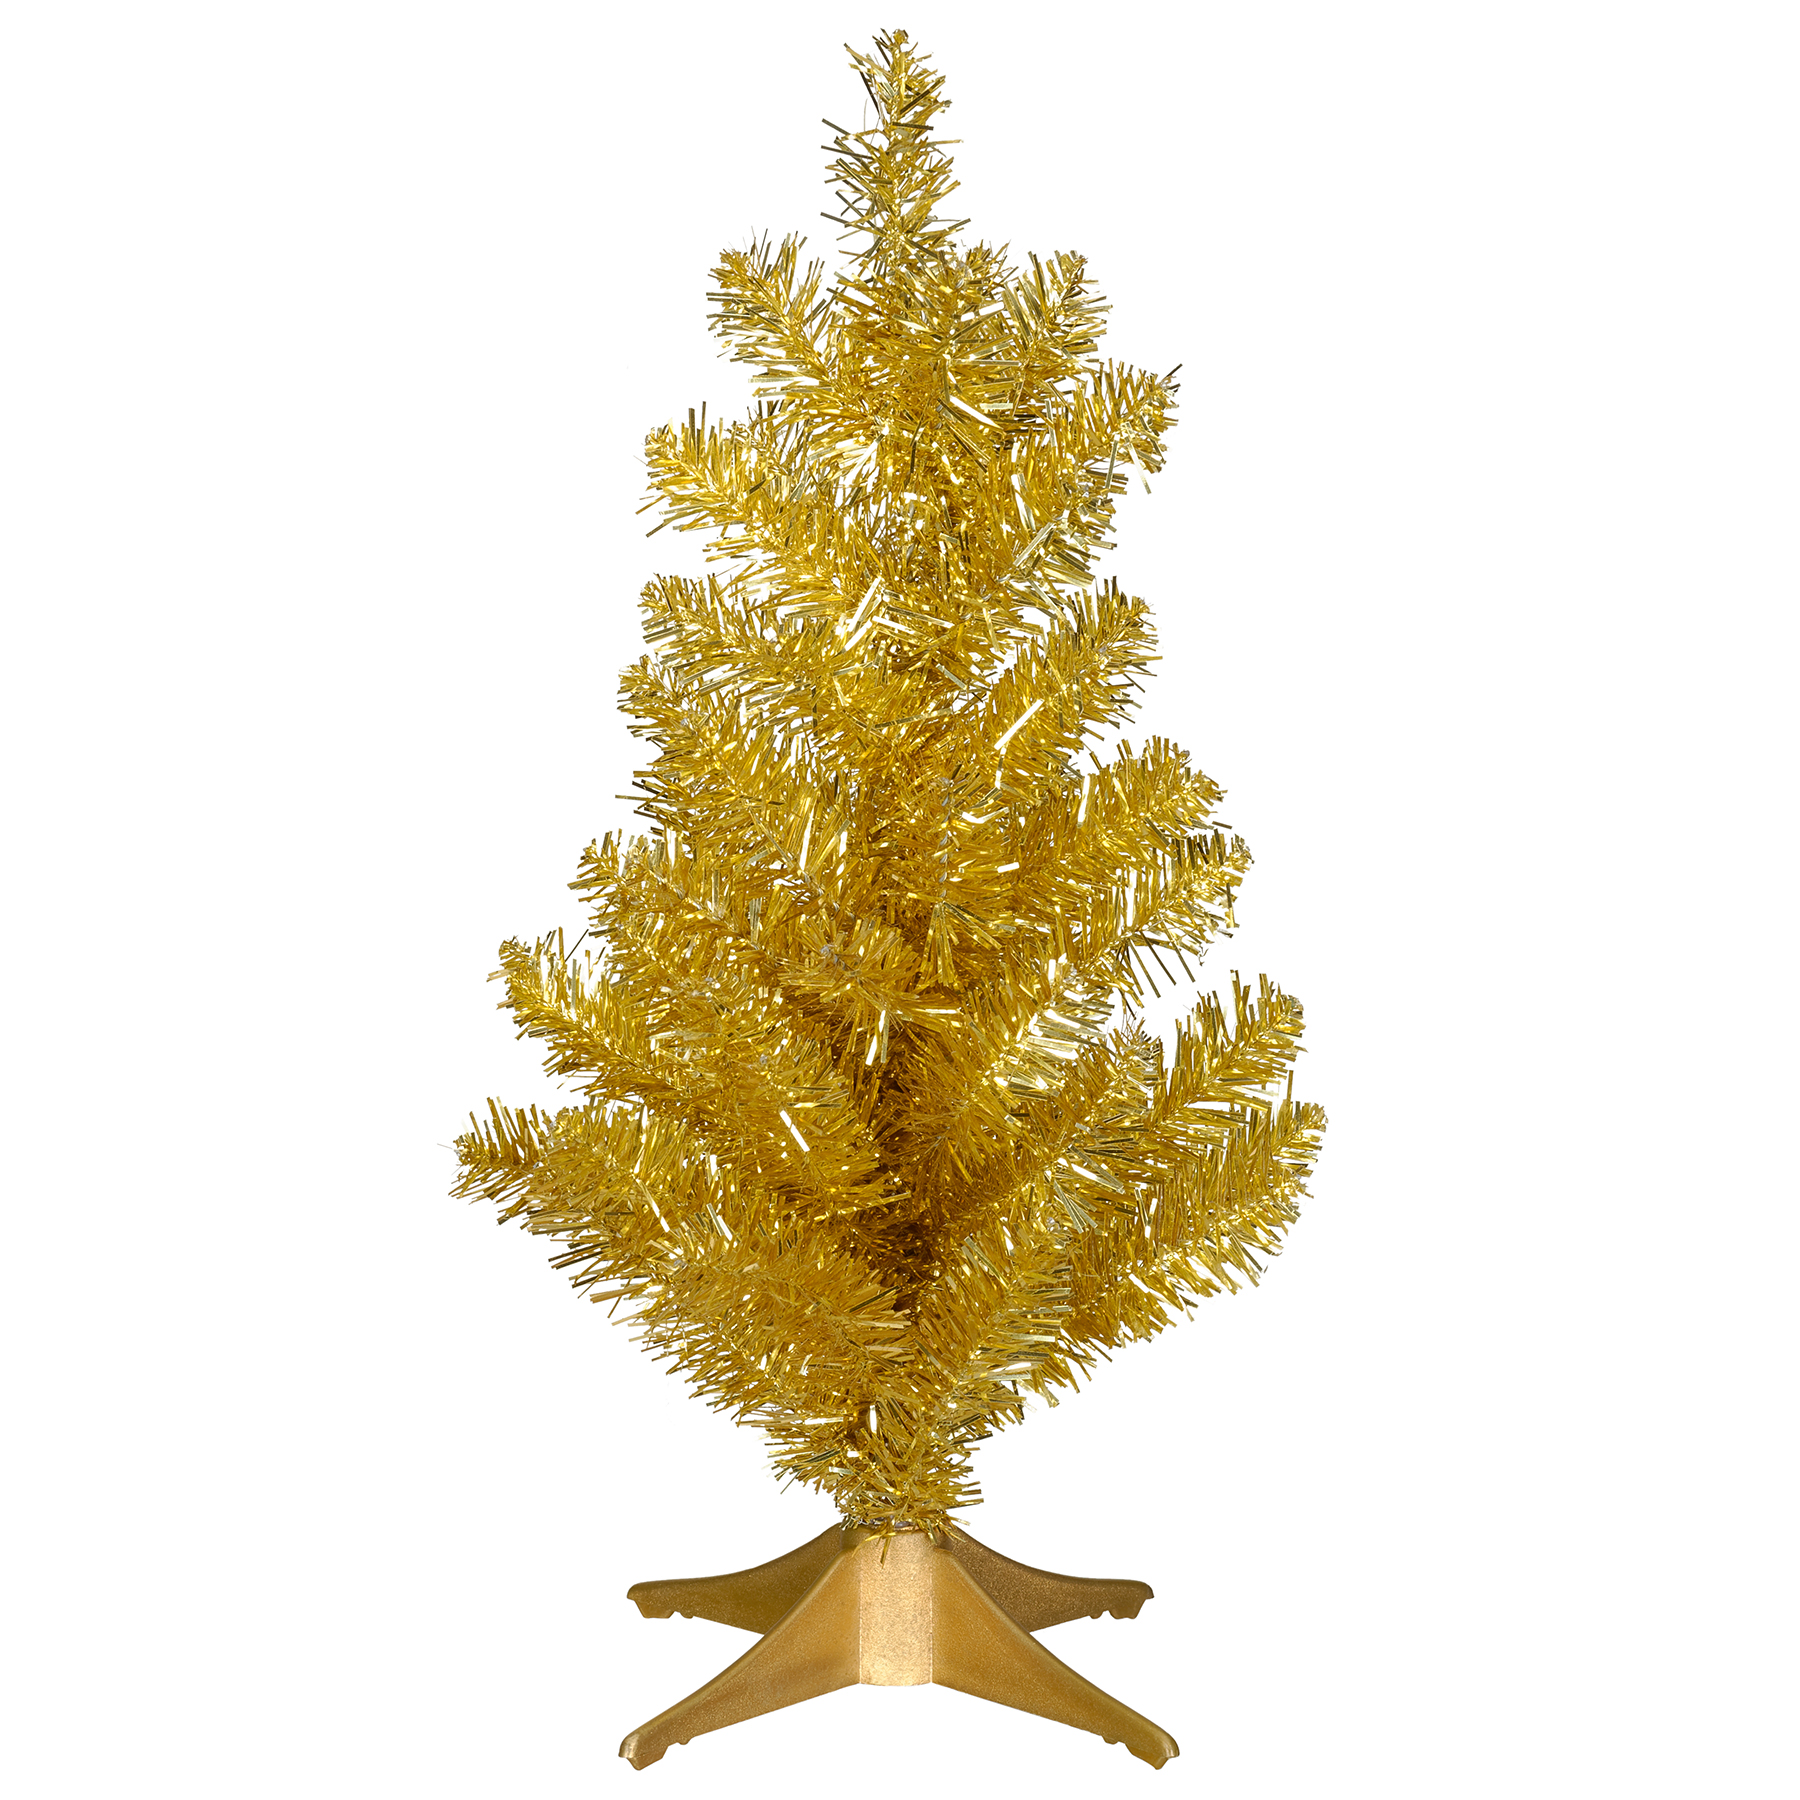 Buy The Gold Mini Christmas Tree By Celebrate It� At Michaels